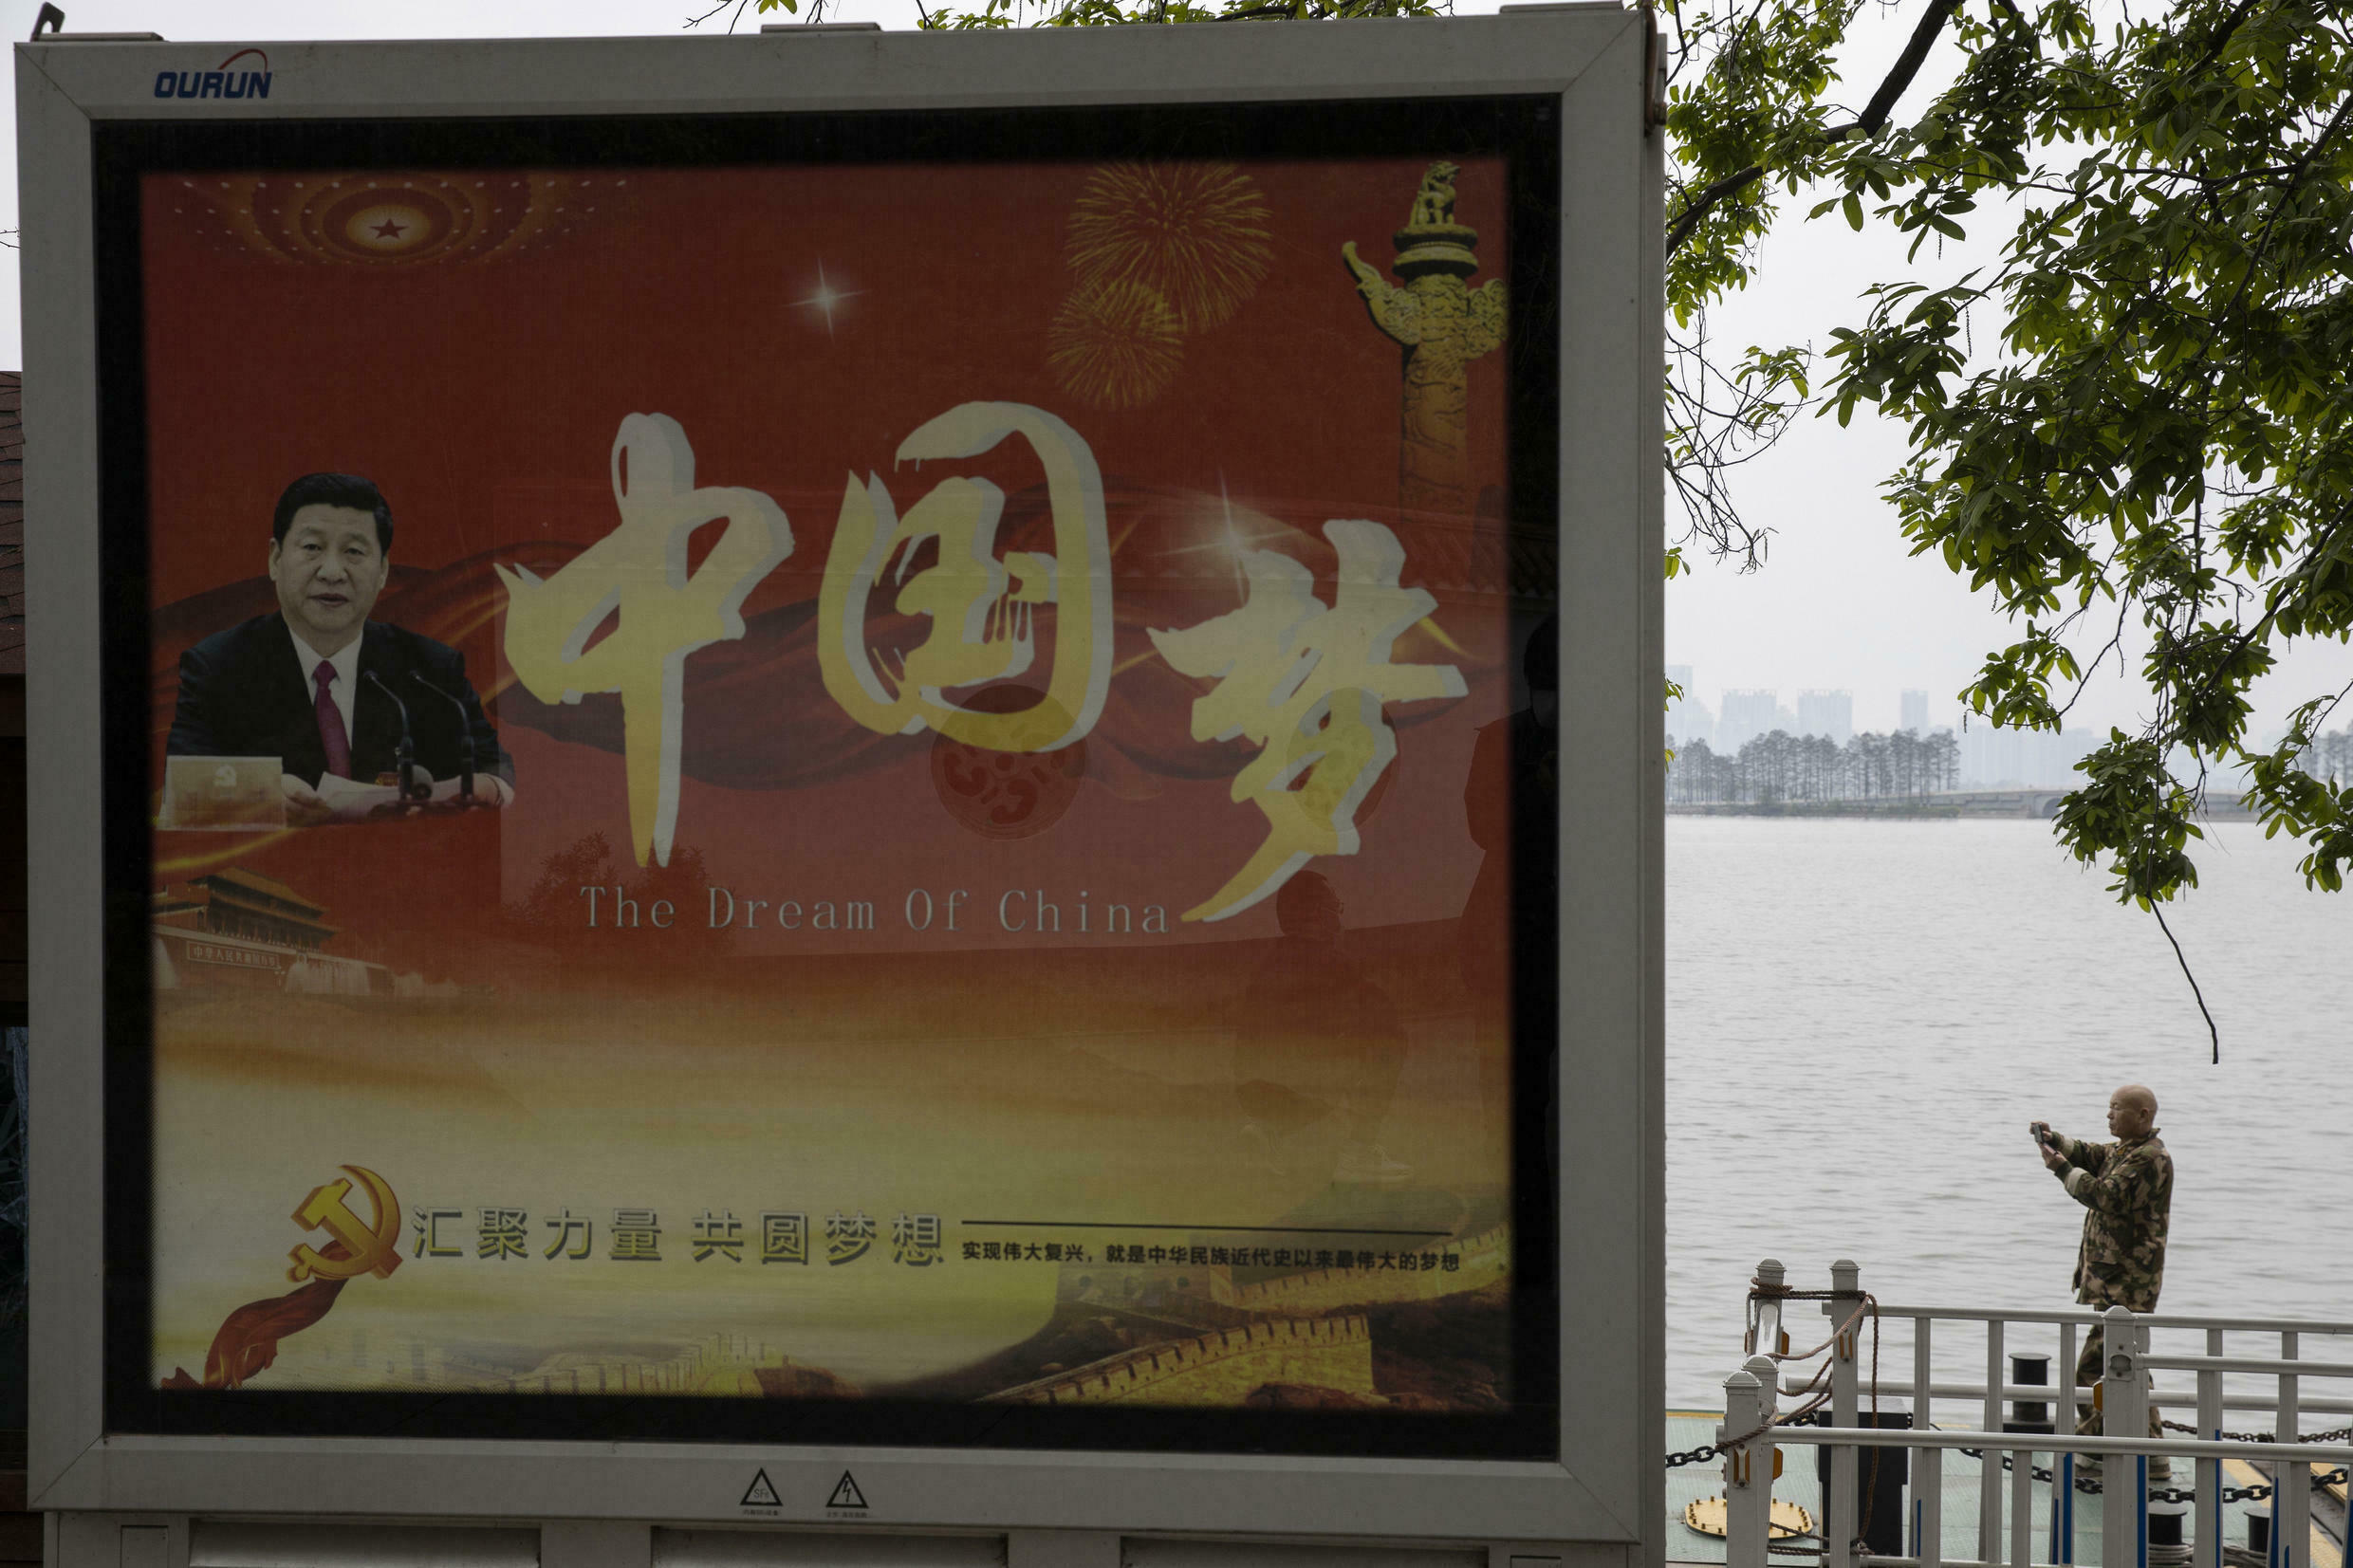 """A worker wearing a mask to reduce the chances of contracting the coronavirus takes a photo near a government propaganda poster showing Chinese President Xi and the words """"China Dream"""" at the East Lake park in Wuhan in central China's Hubei province on Thursday, April 2, 2020."""